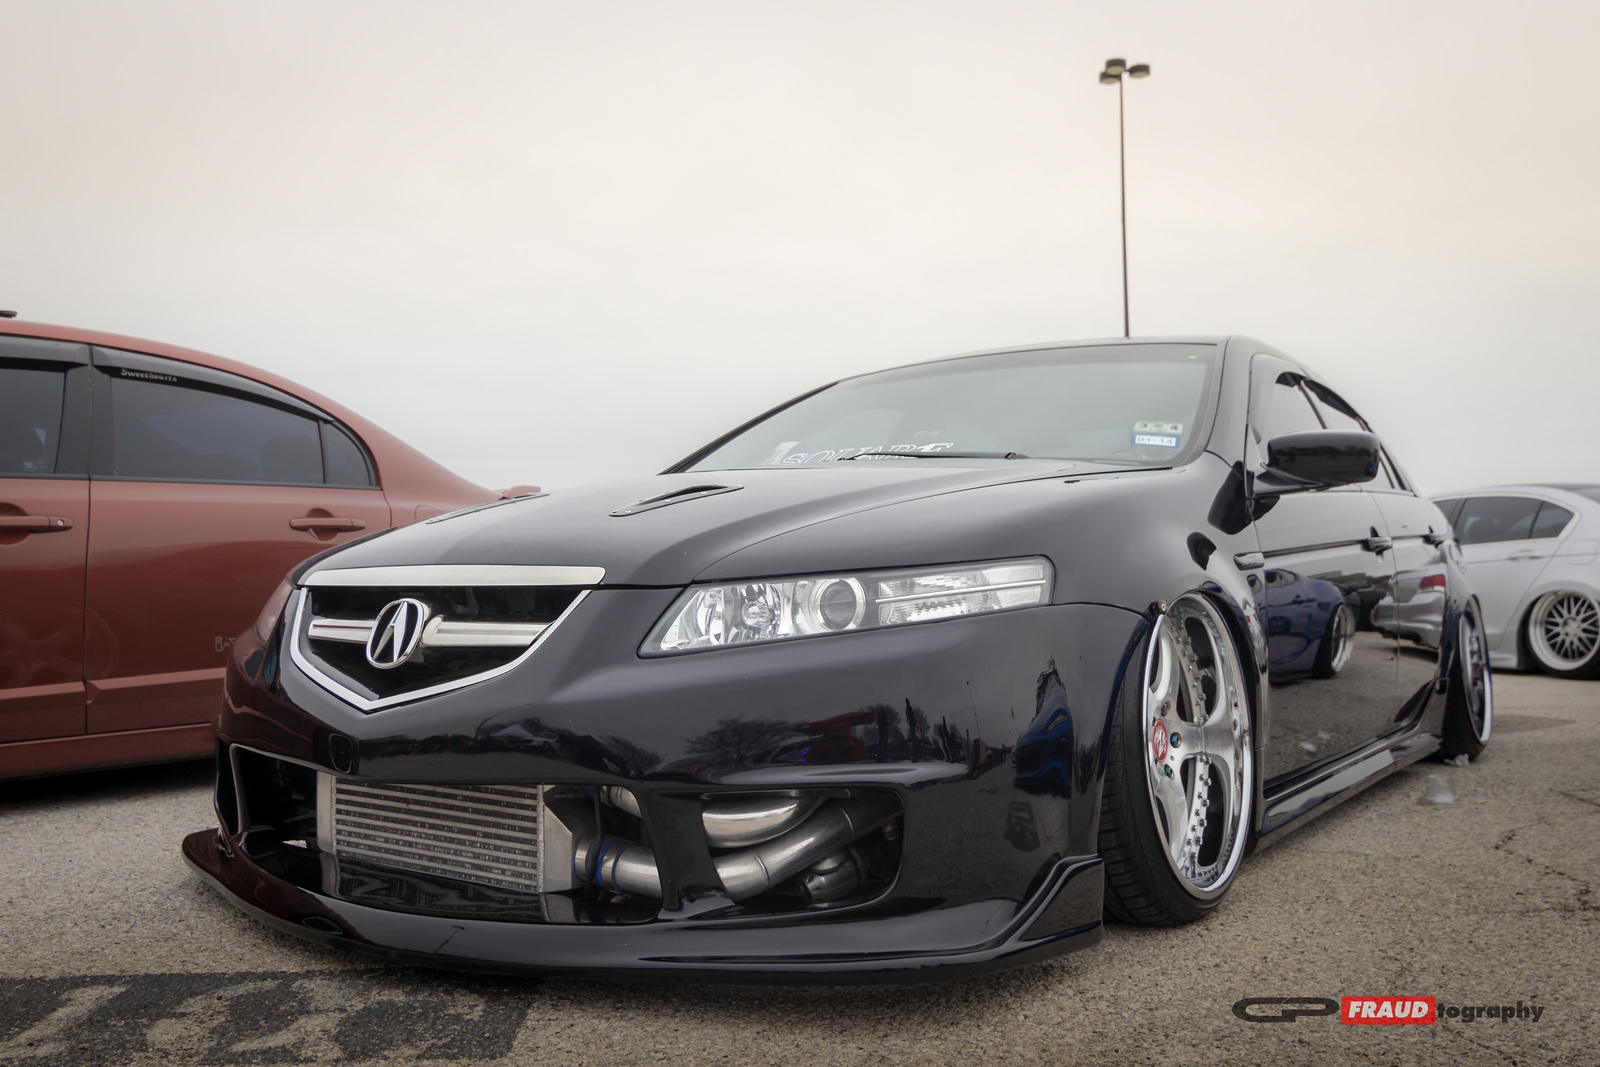 acura tl type s vs tl file 39 07 acura tl type s jpg. Black Bedroom Furniture Sets. Home Design Ideas